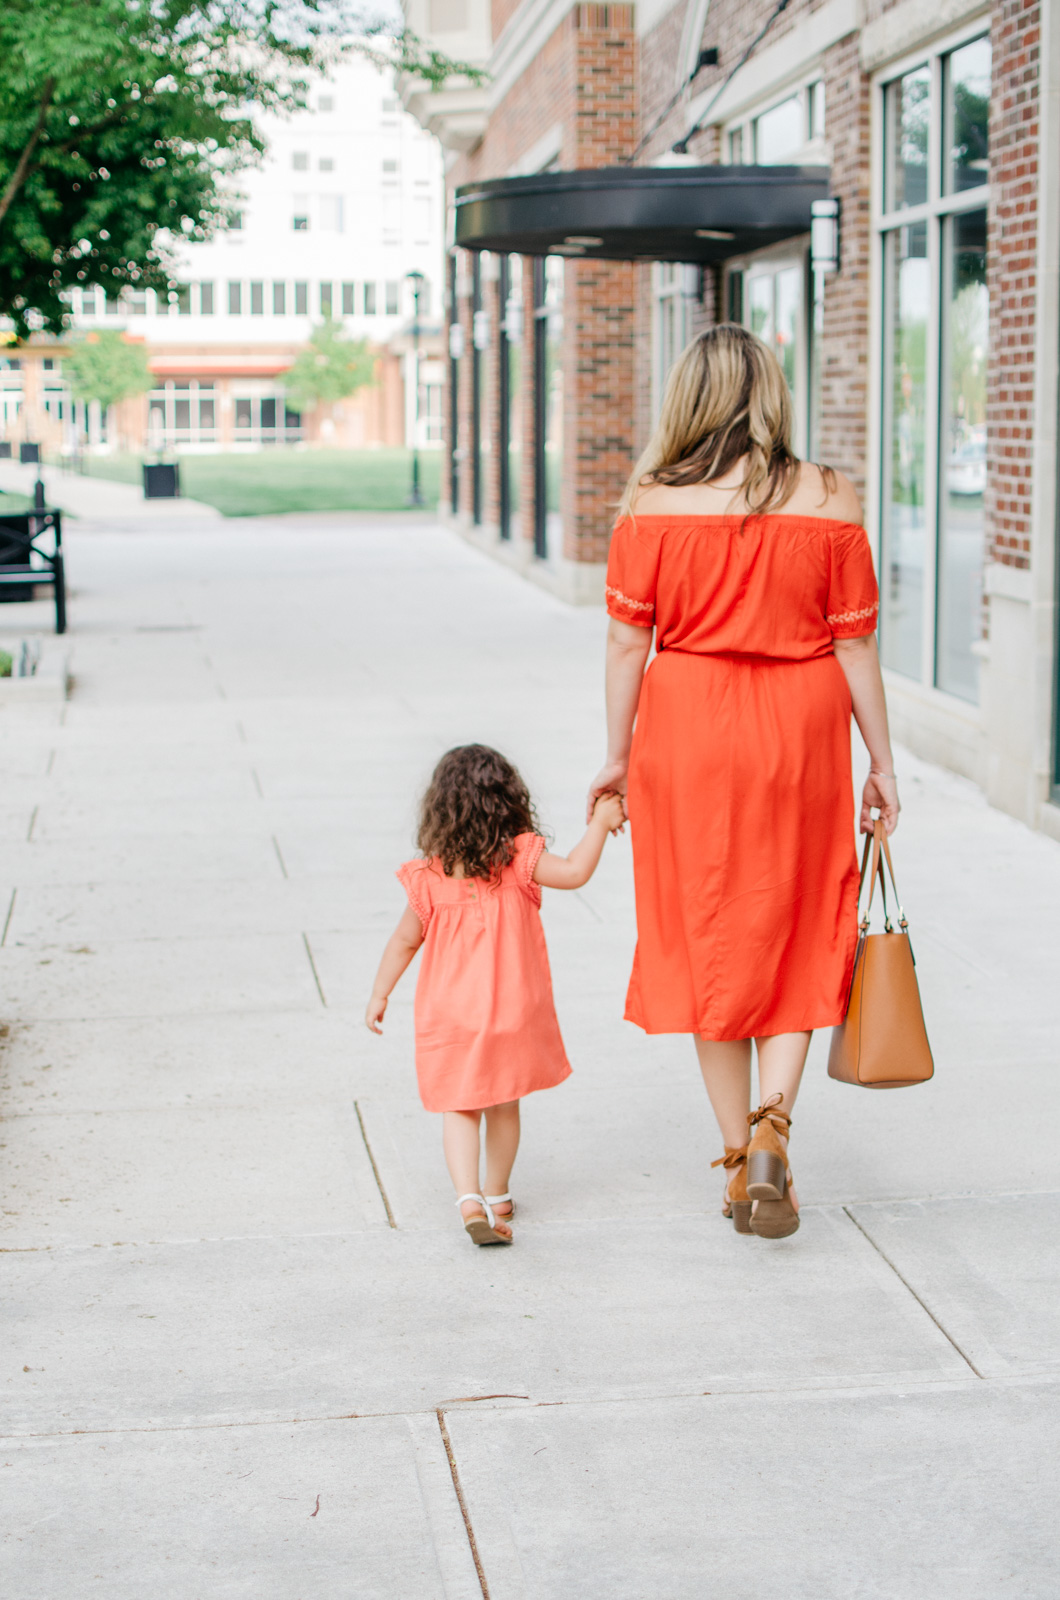 spring outfit ideas - mother daughter matching outfit | bylaurenm.com